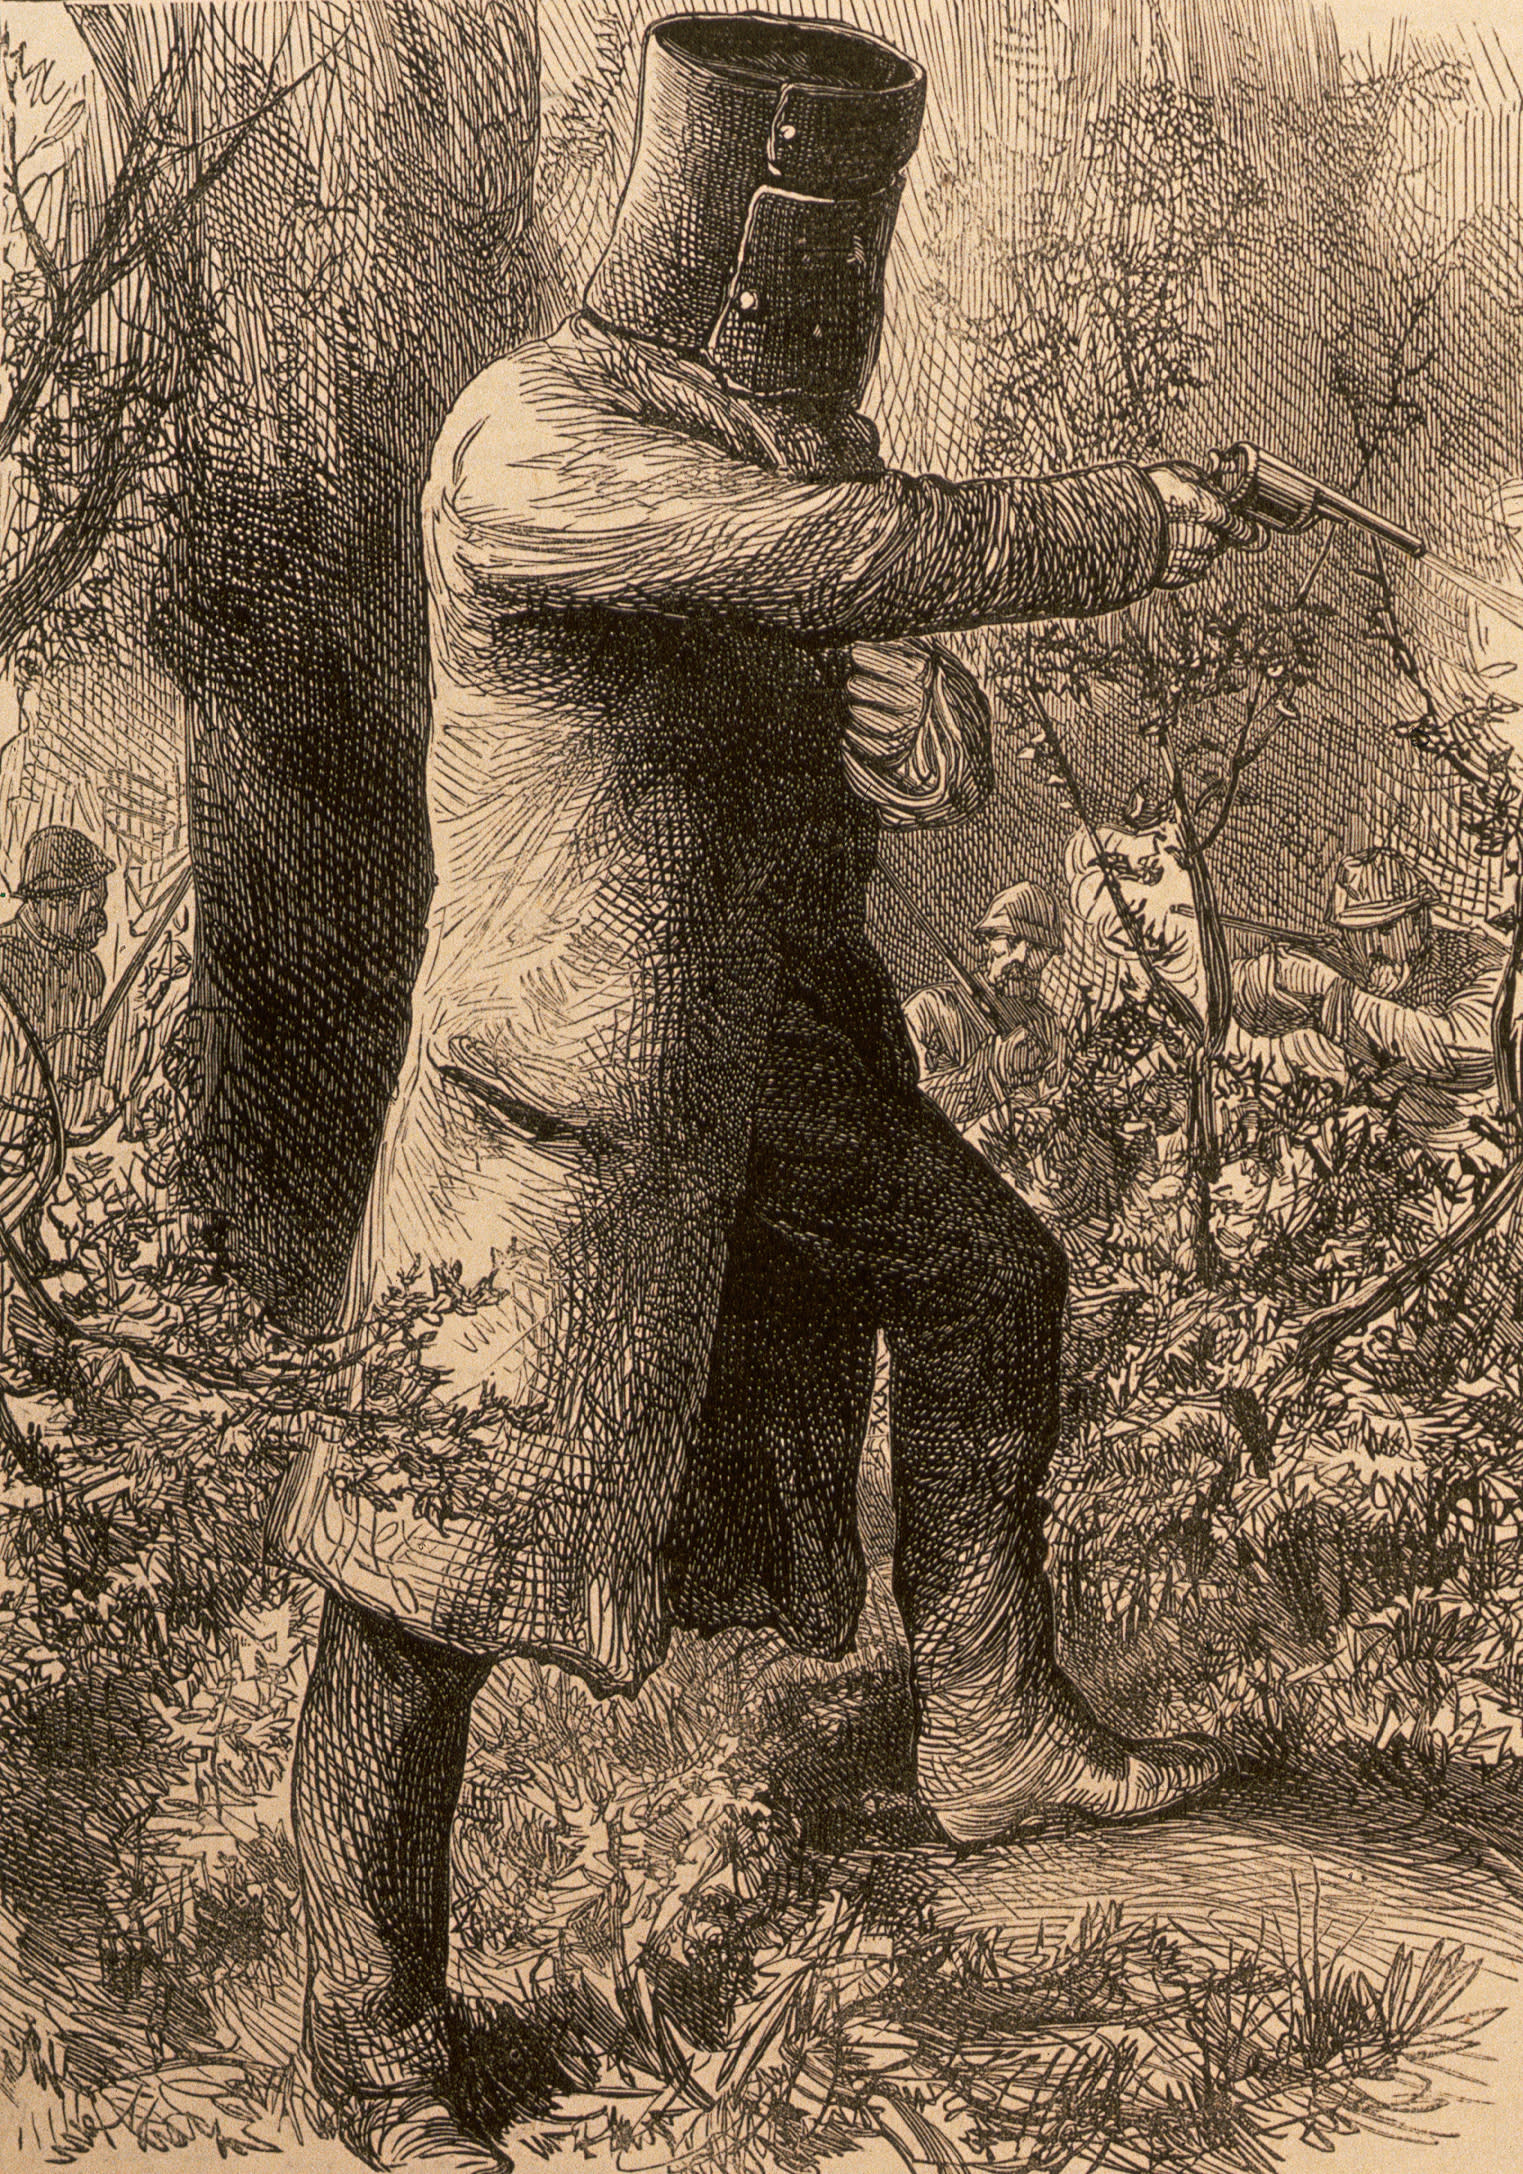 Ned and Dan Kelly led a band of outlaw bushrangers active in Victoria and New South Wales in the late 19th century. Illustration from Illustrated London News, September 11, 1880. (Photo by © CORBIS/Corbis via Getty Images)